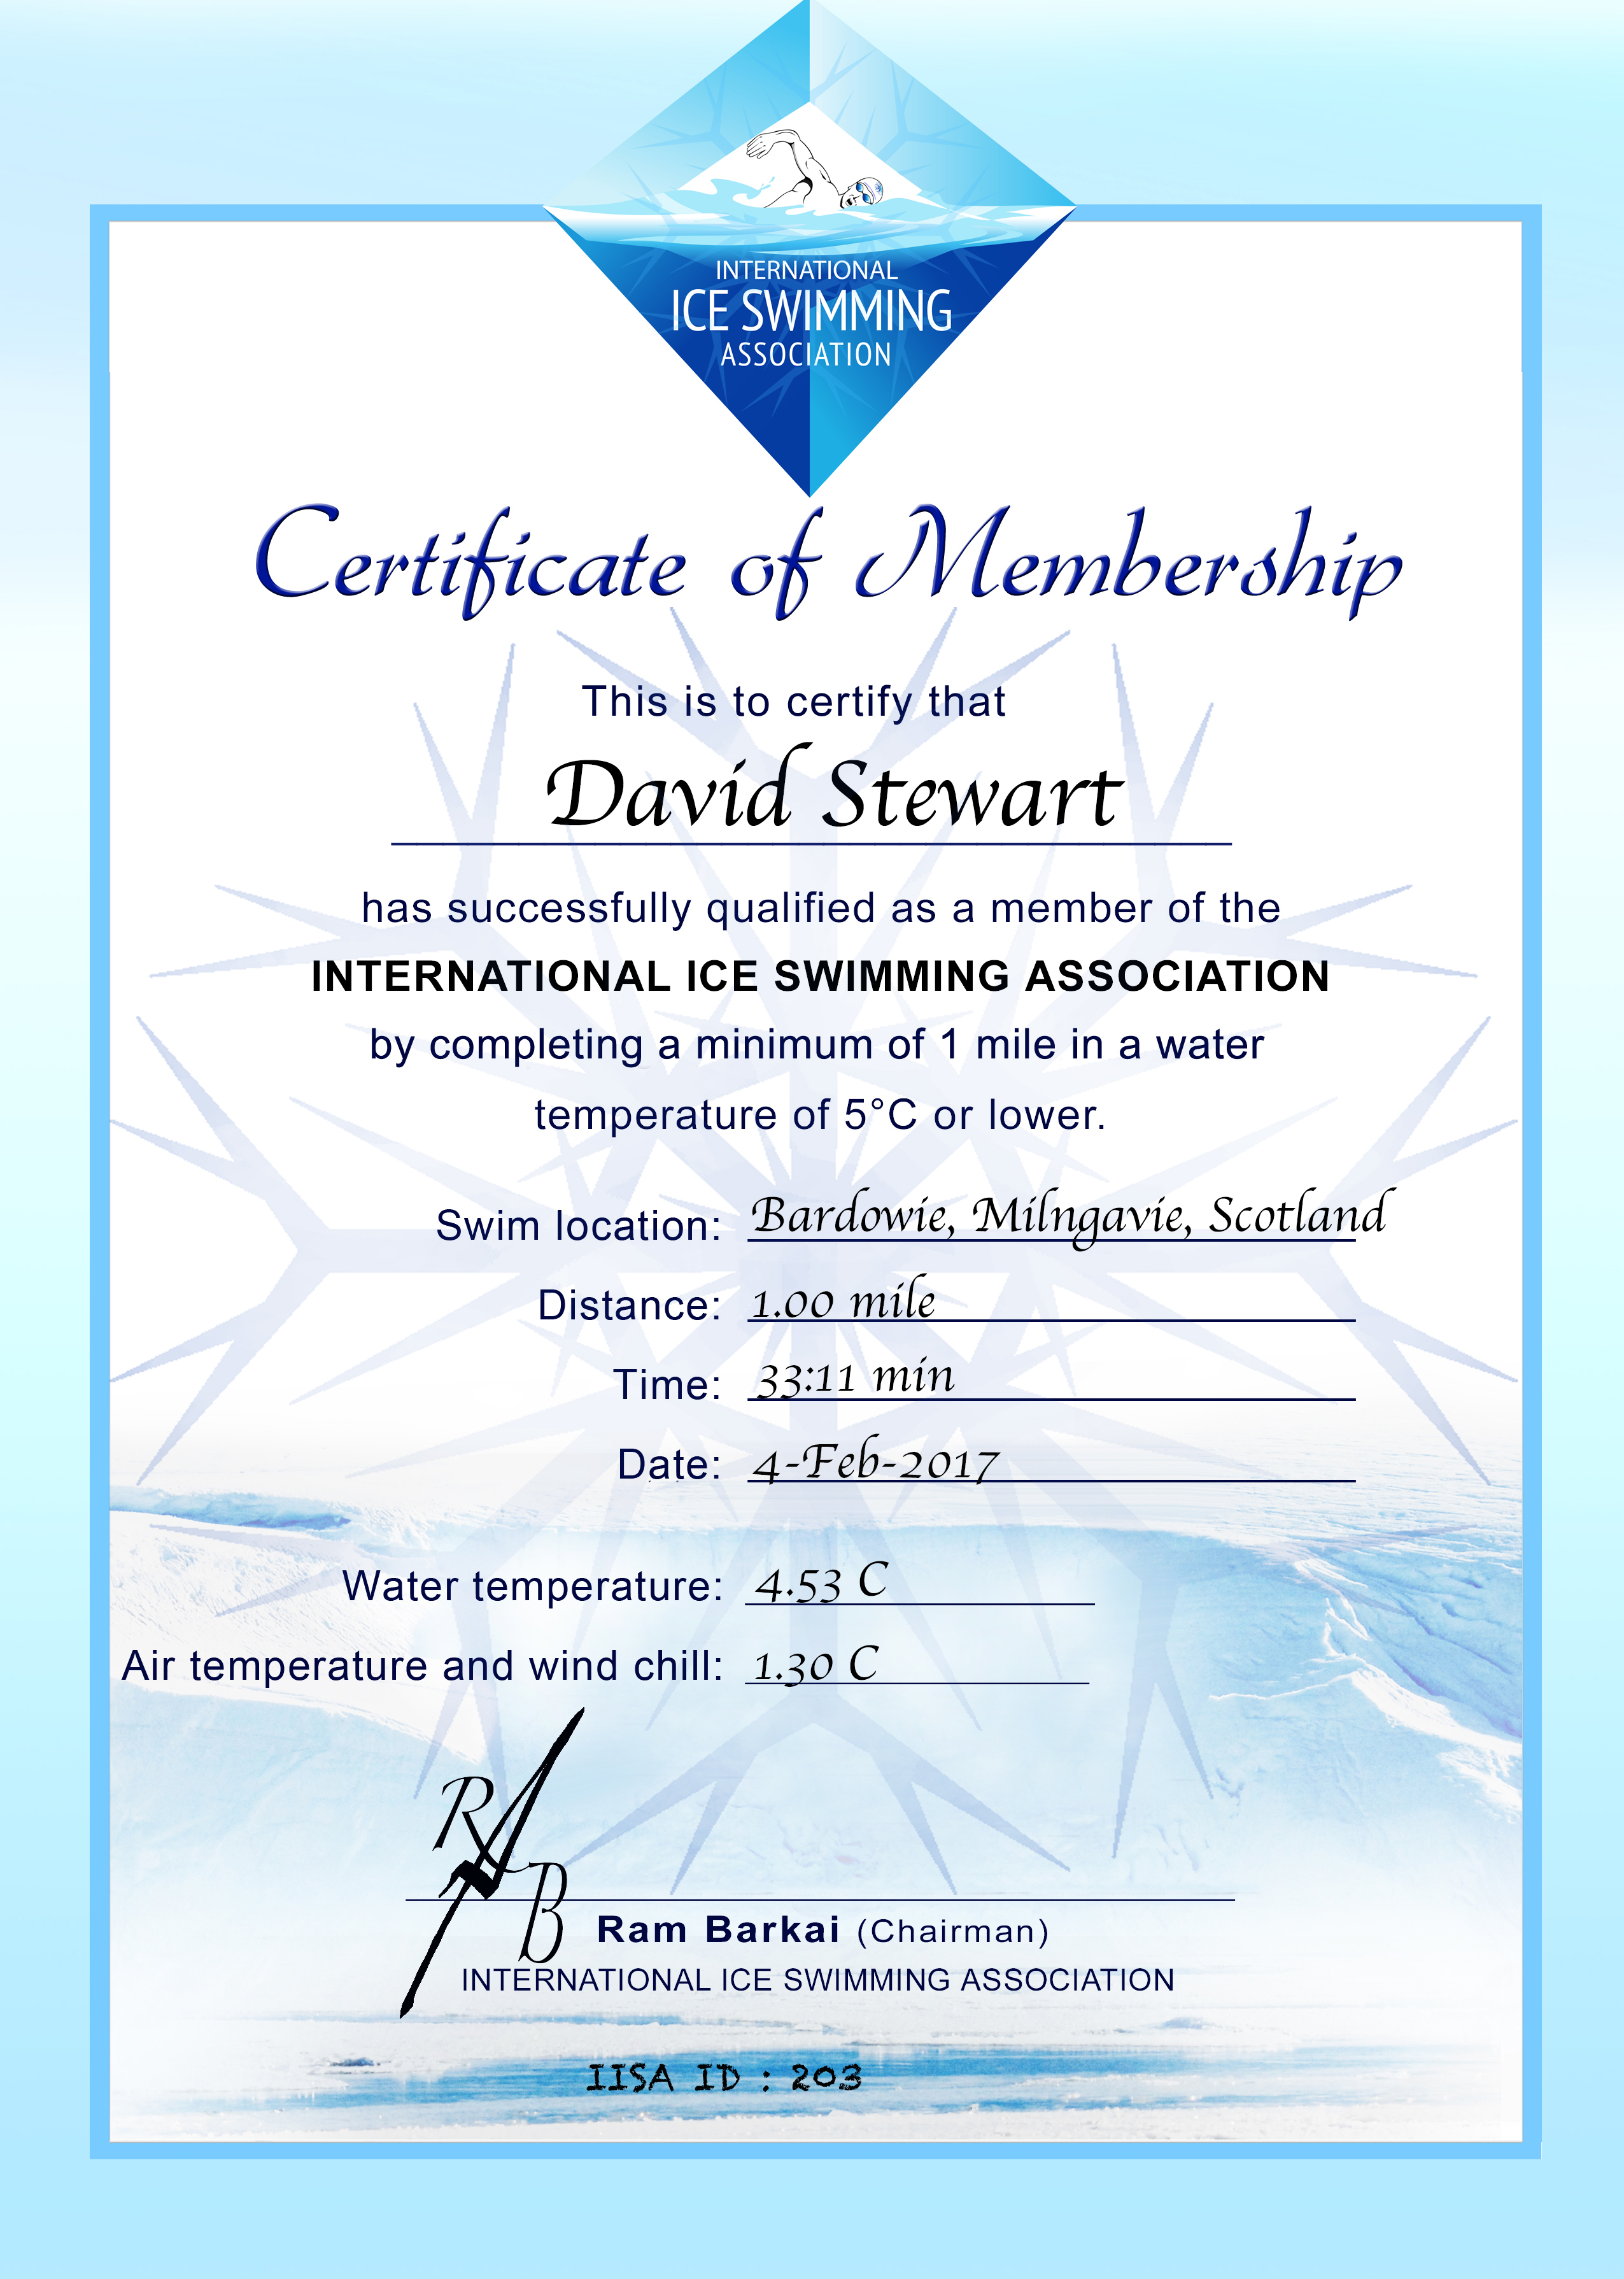 Ice Mile Certificate - David Stewart